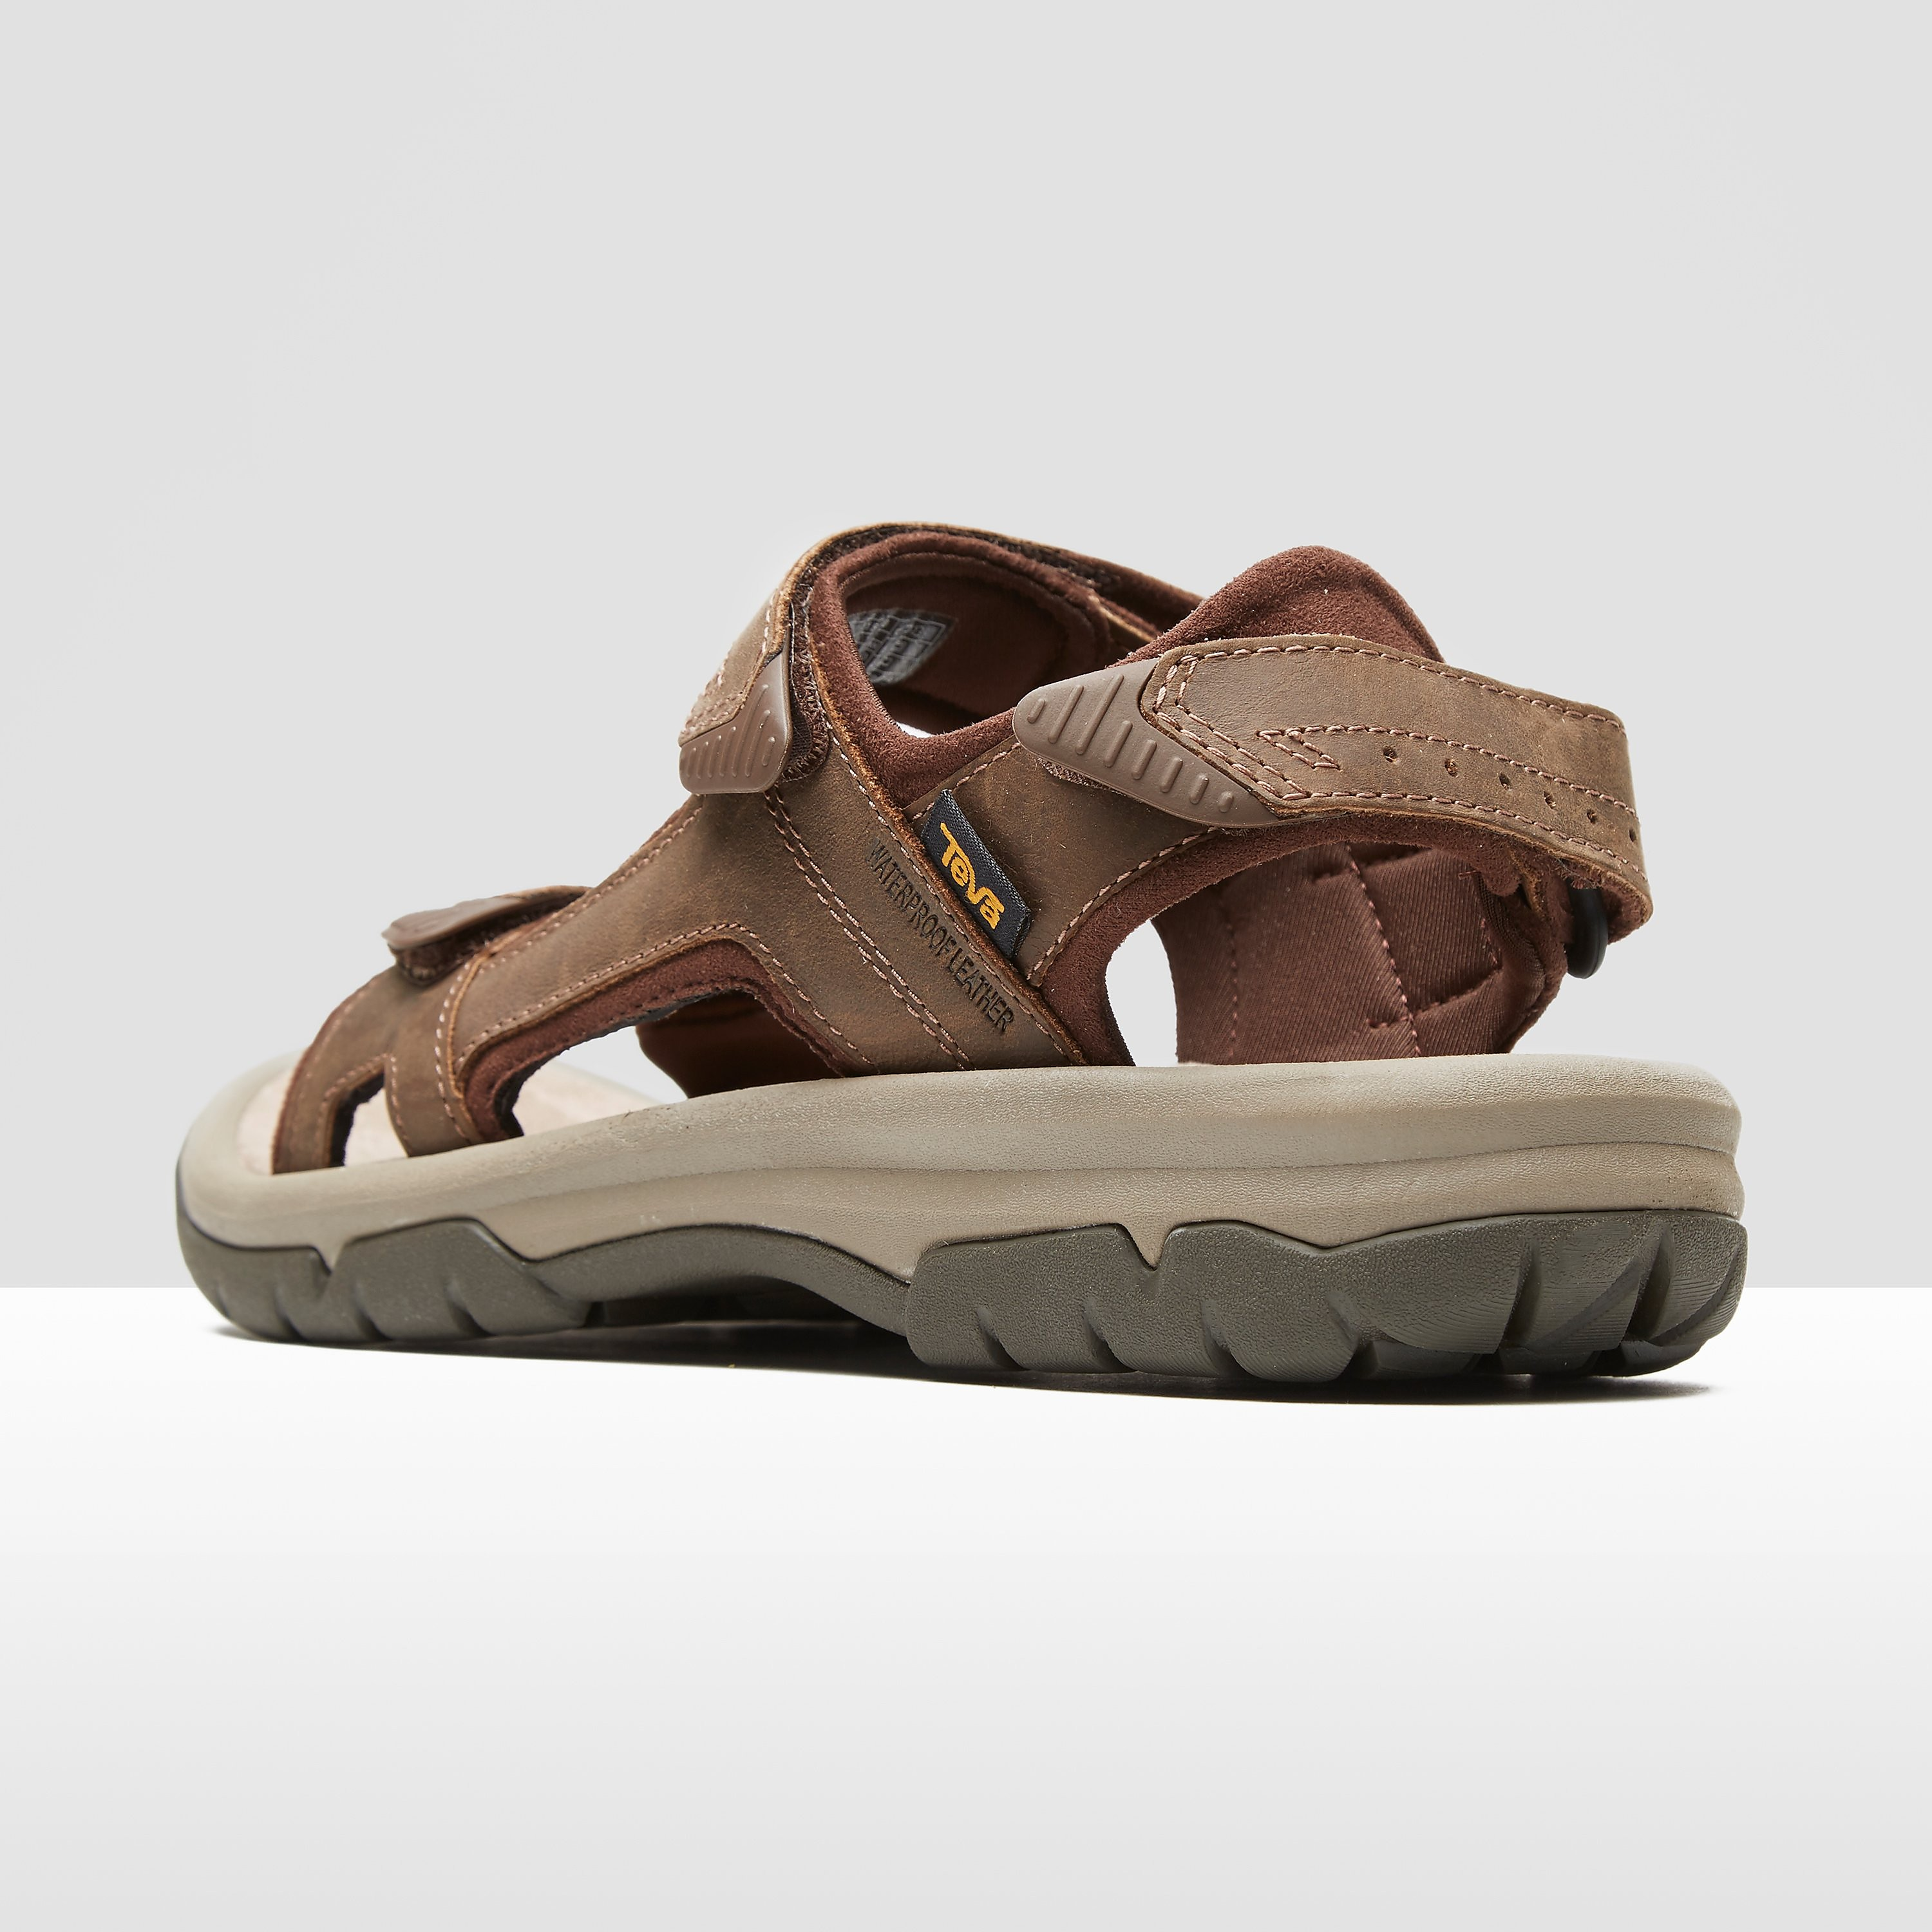 Teva Langdon Men's Sandals